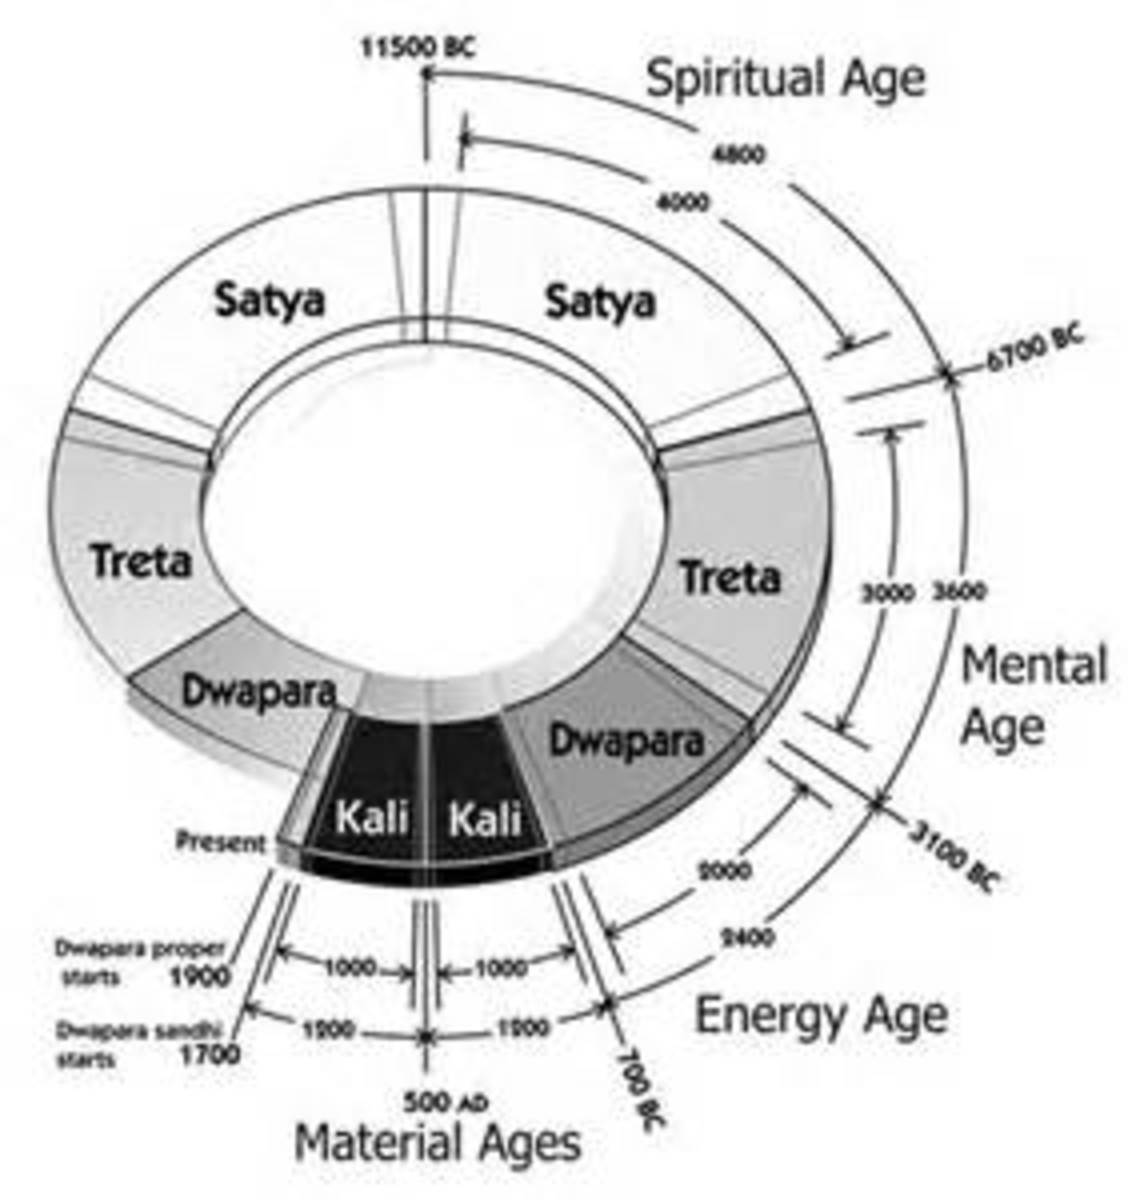 The Yuga Cycle